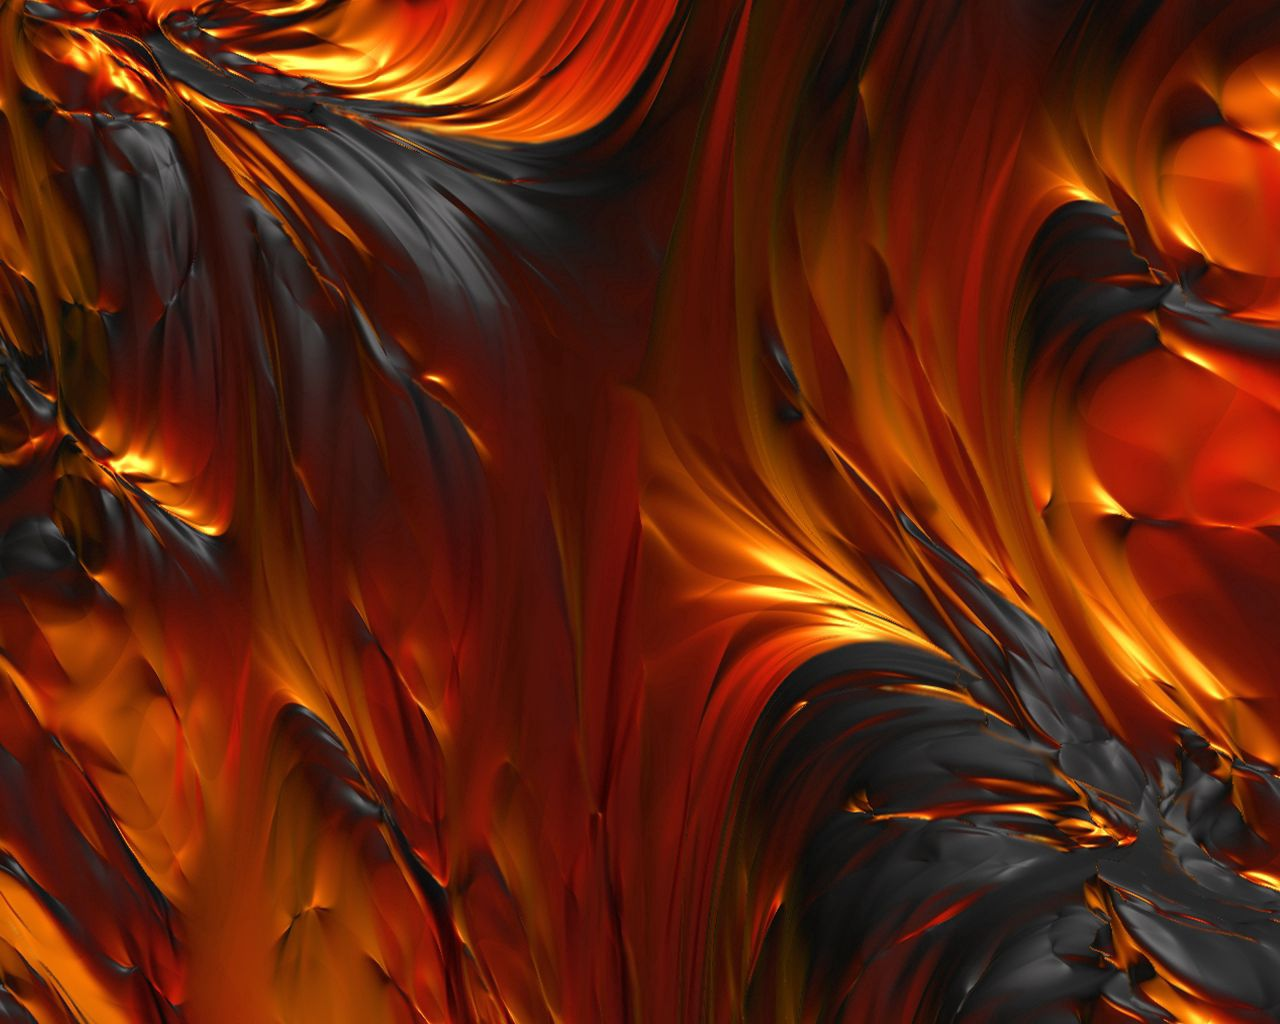 115985 free wallpaper 720x1520 for phone, download images Abstract, Fire, Paints, Blurred, Greased, Butter, Oil 720x1520 for mobile